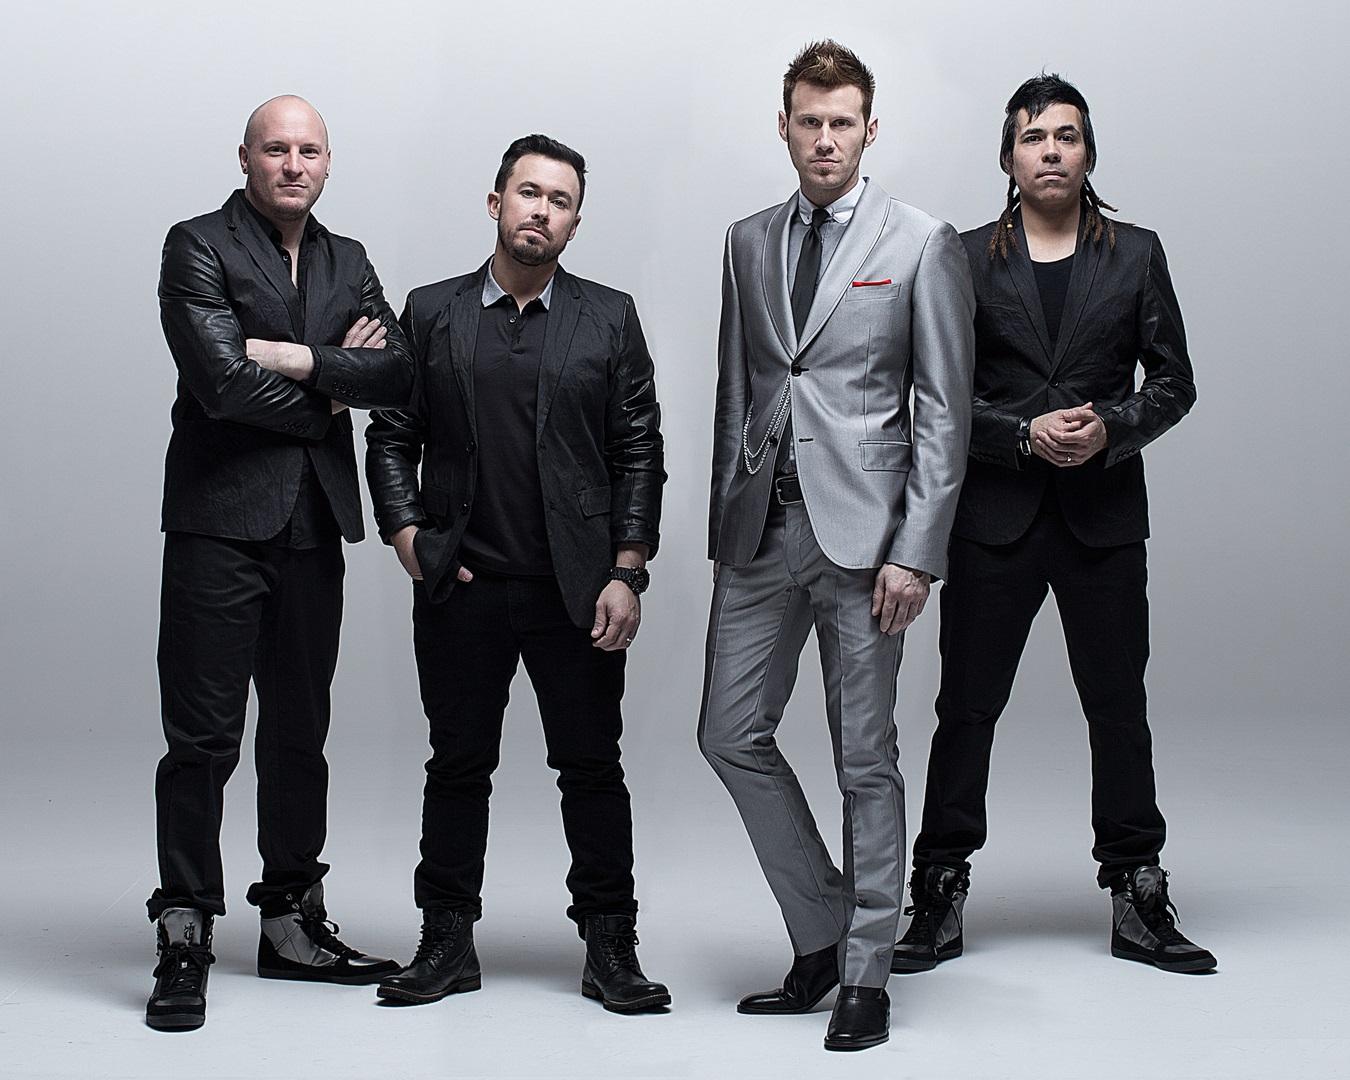 """Building 429 """"WE WON'T BE SHAKEN"""" Debuts at No.1 on Billboard Christian Albums Chart and No. 53 on Billboard Top 200 Albums Chart"""